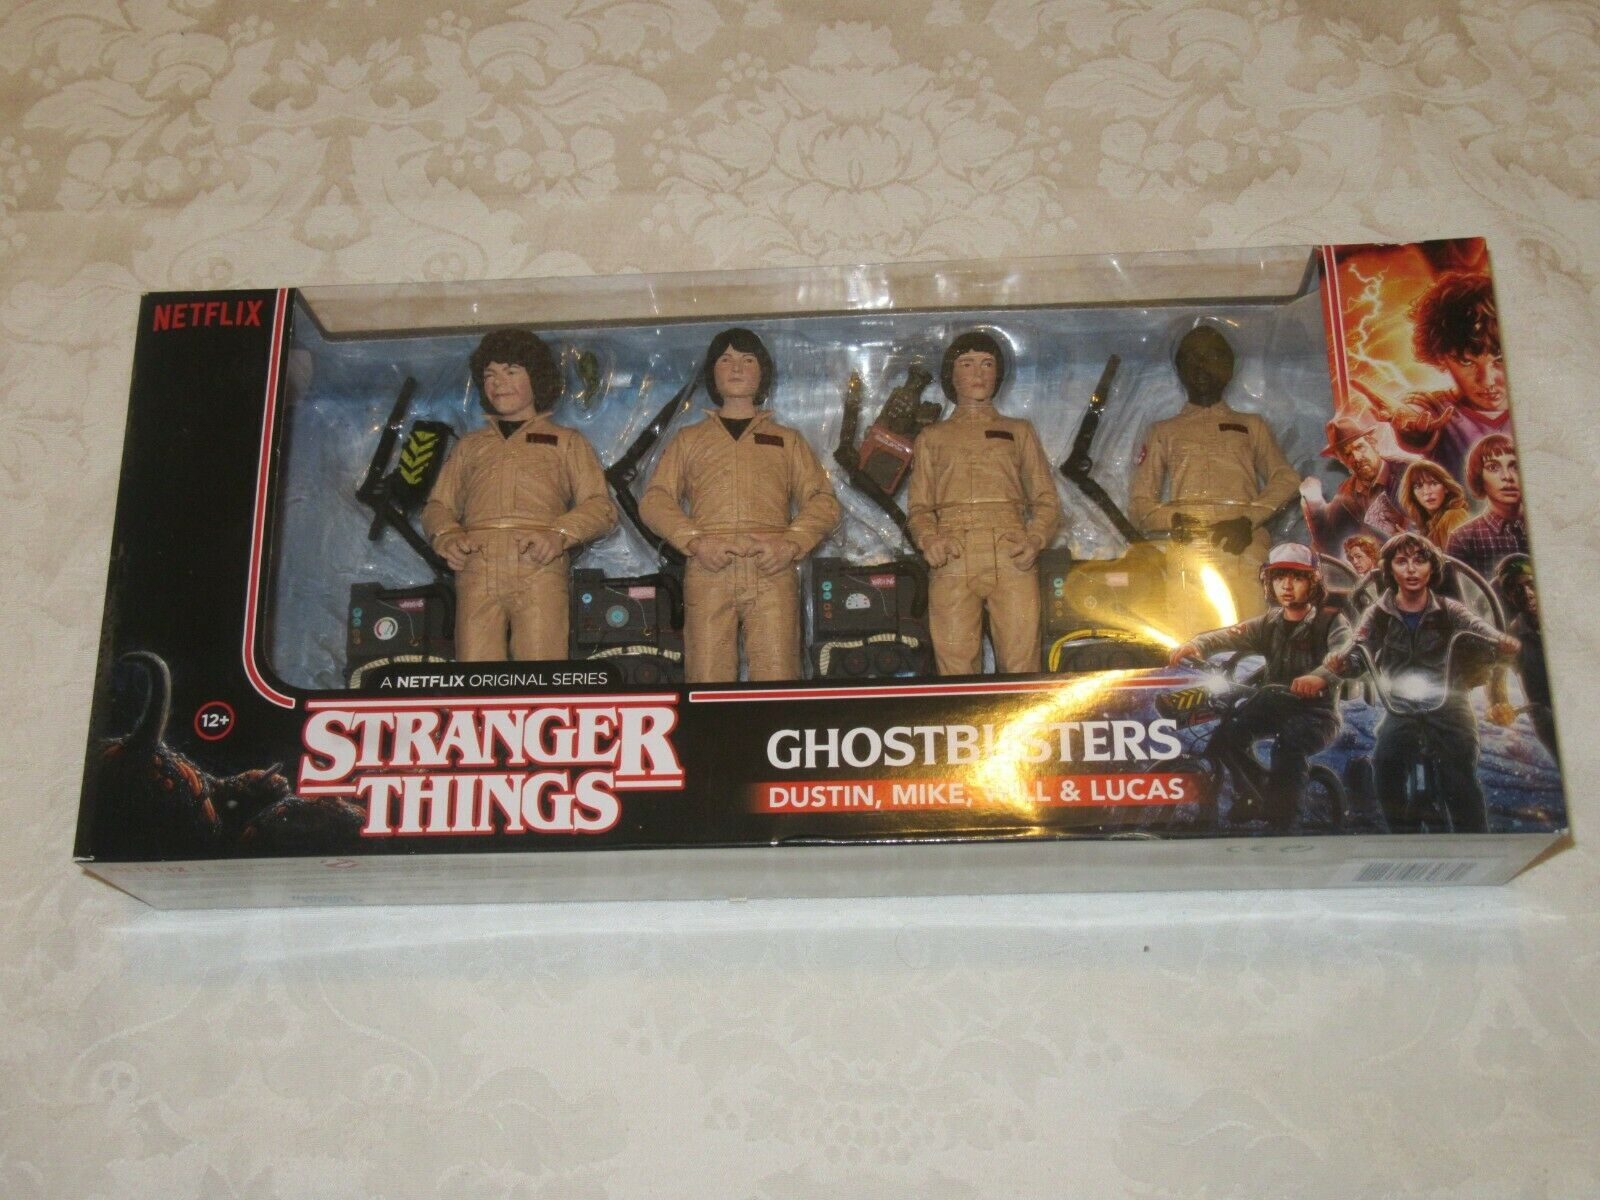 McFarlane giocattoli Netflix Stranger Things Ghostautoautobusters Dustin  Mike Will & Lucas Set  vendite online